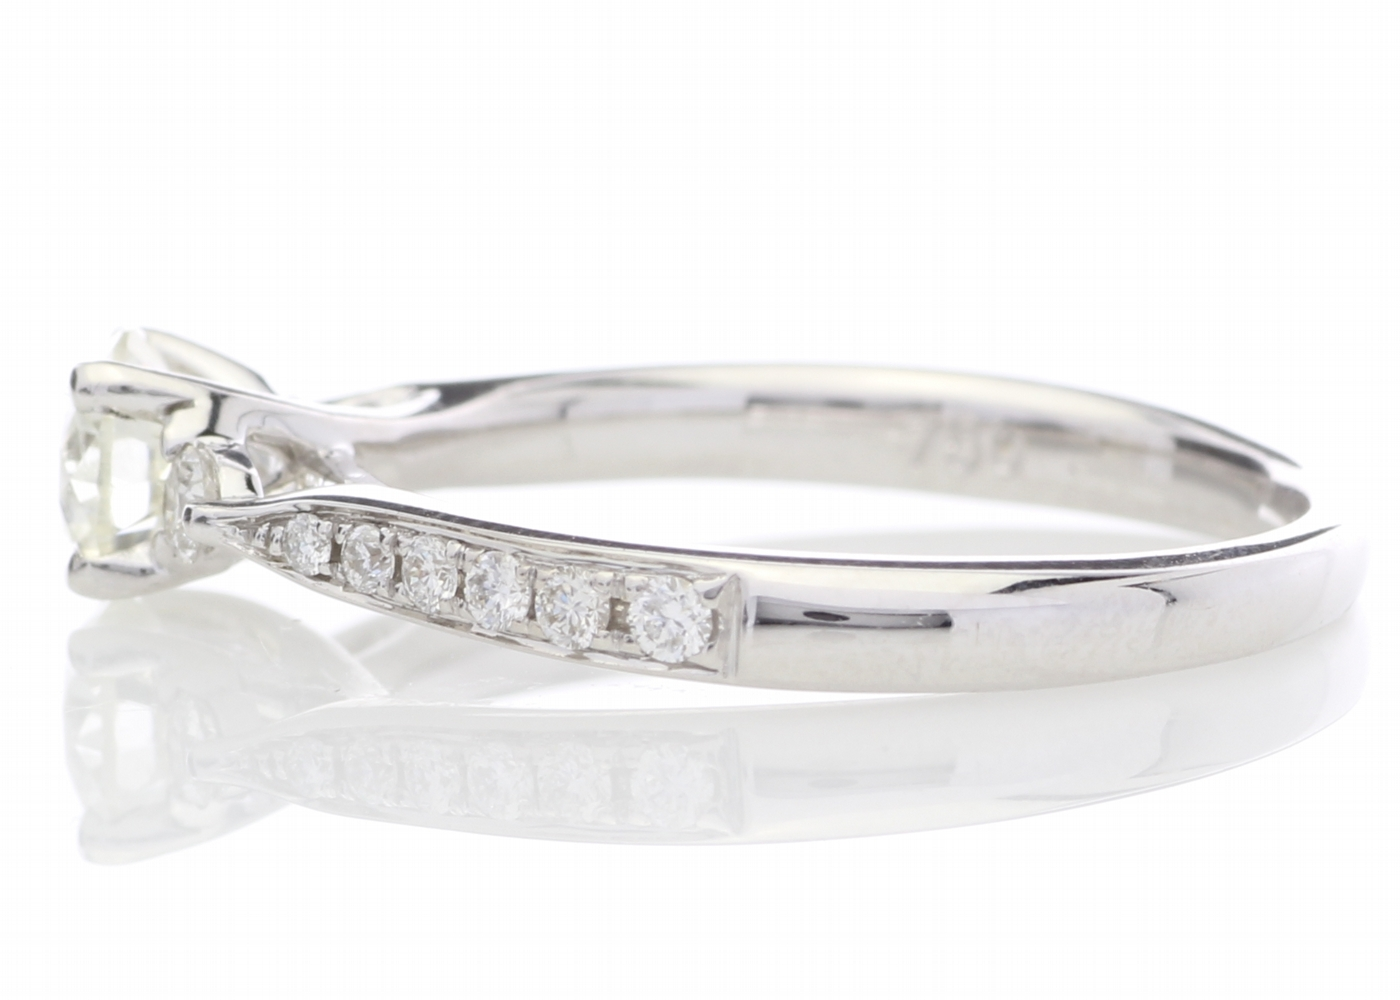 18ct White Gold Diamond Ring With Stone Set Shoulders 0.72 Carats - Image 3 of 5